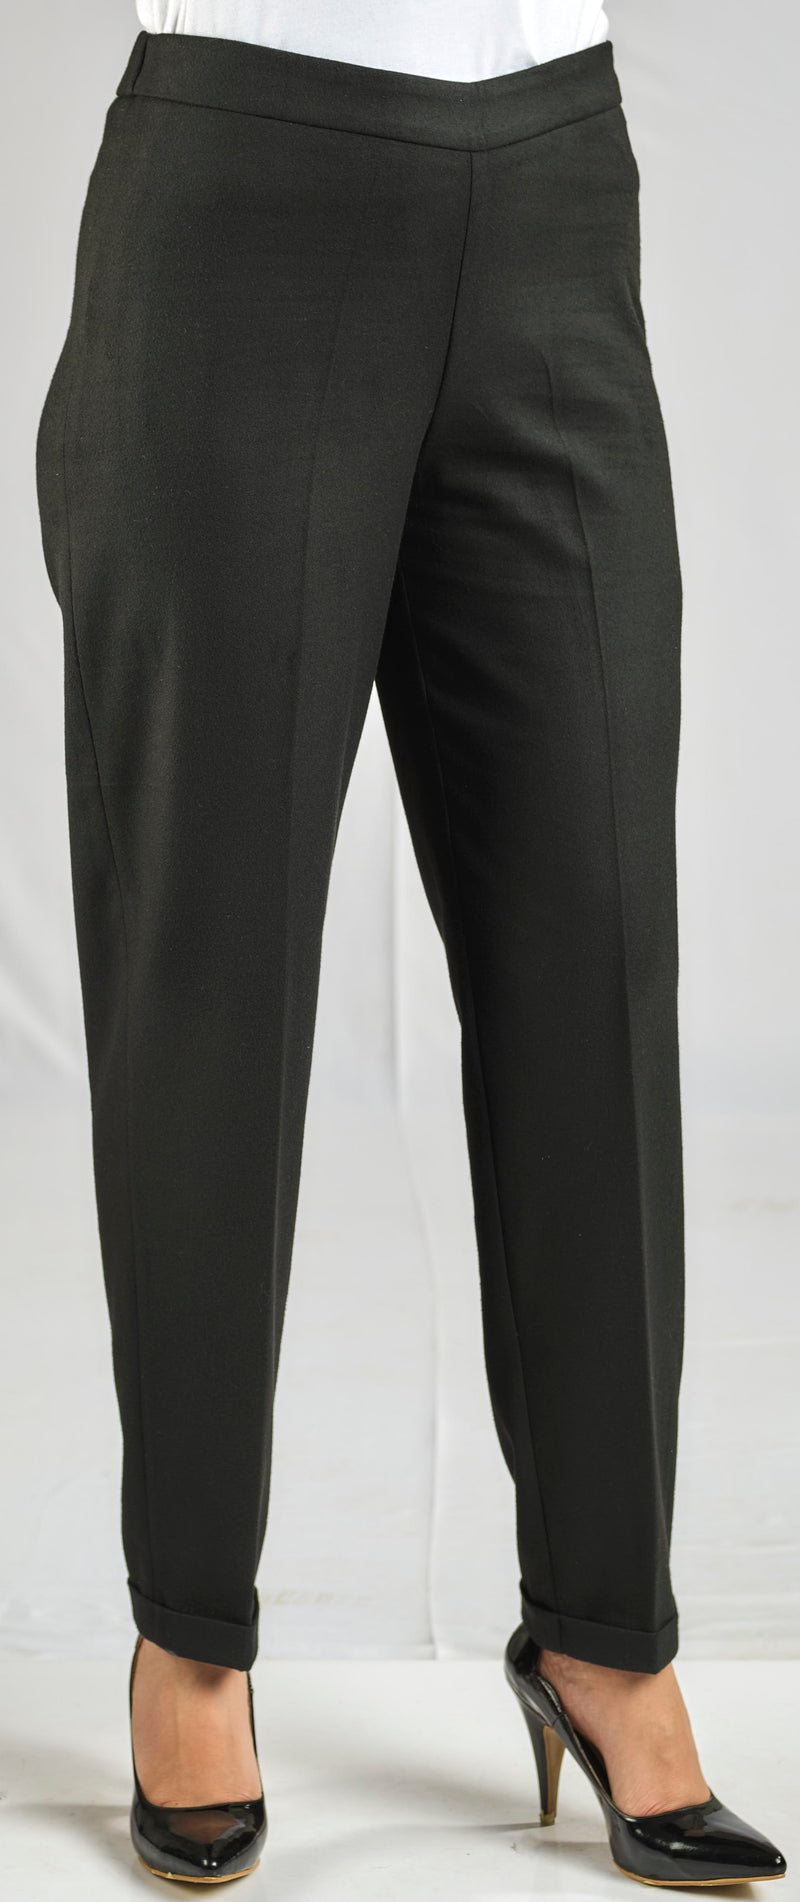 CASHMERE FEEL BASIC PANTS WITH ELASTIC WAIST FOR EXTRA COMFORT